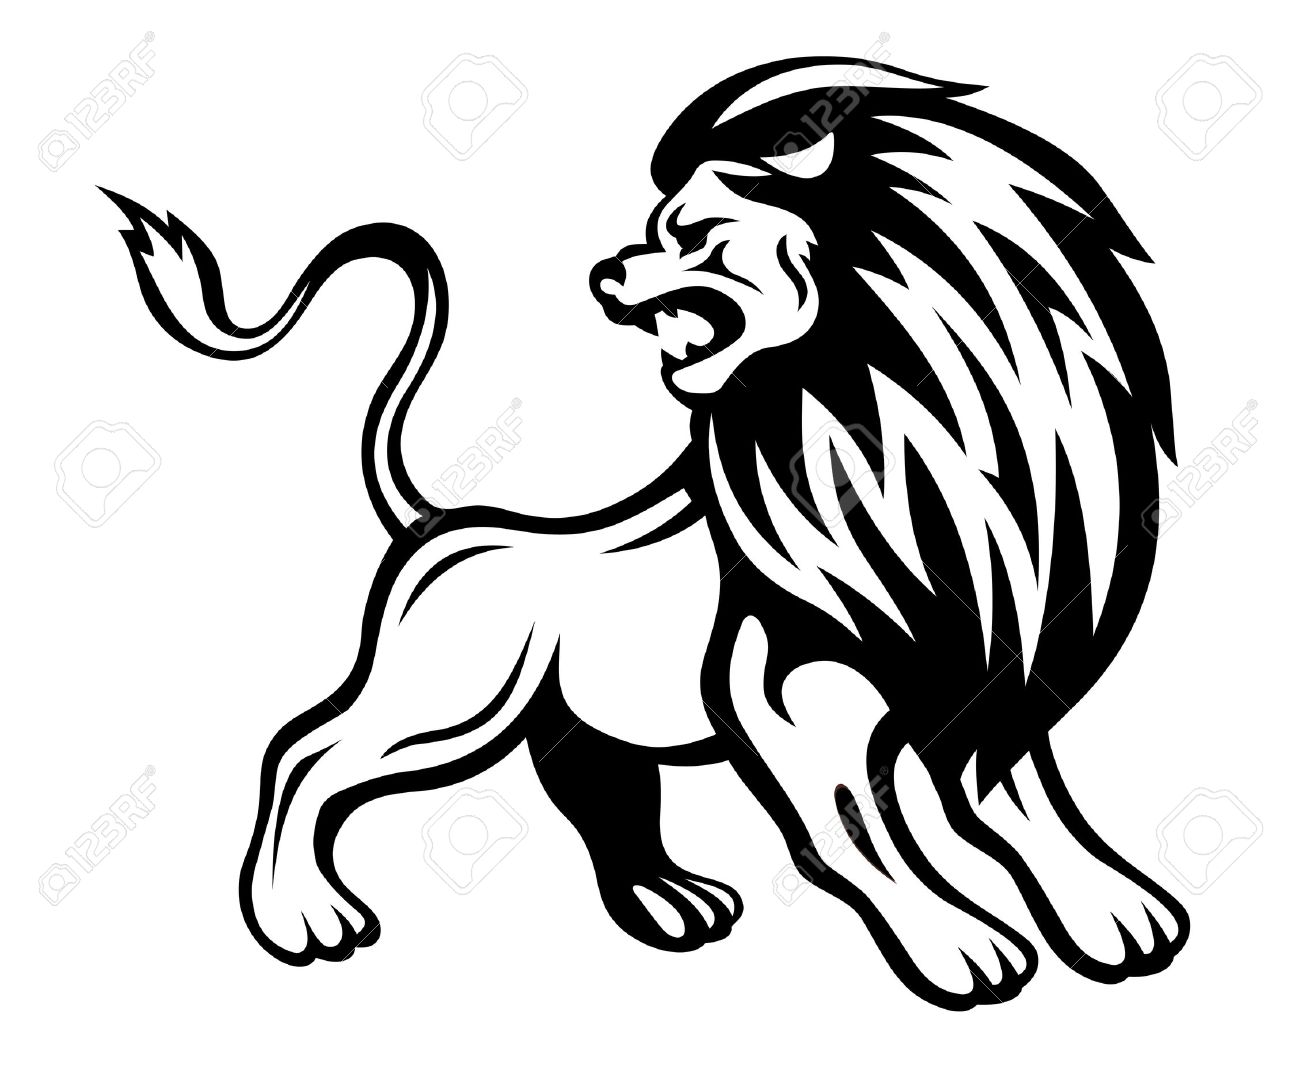 Angry lion in heraldic style. Vector illustration Stock Vector - 22472680